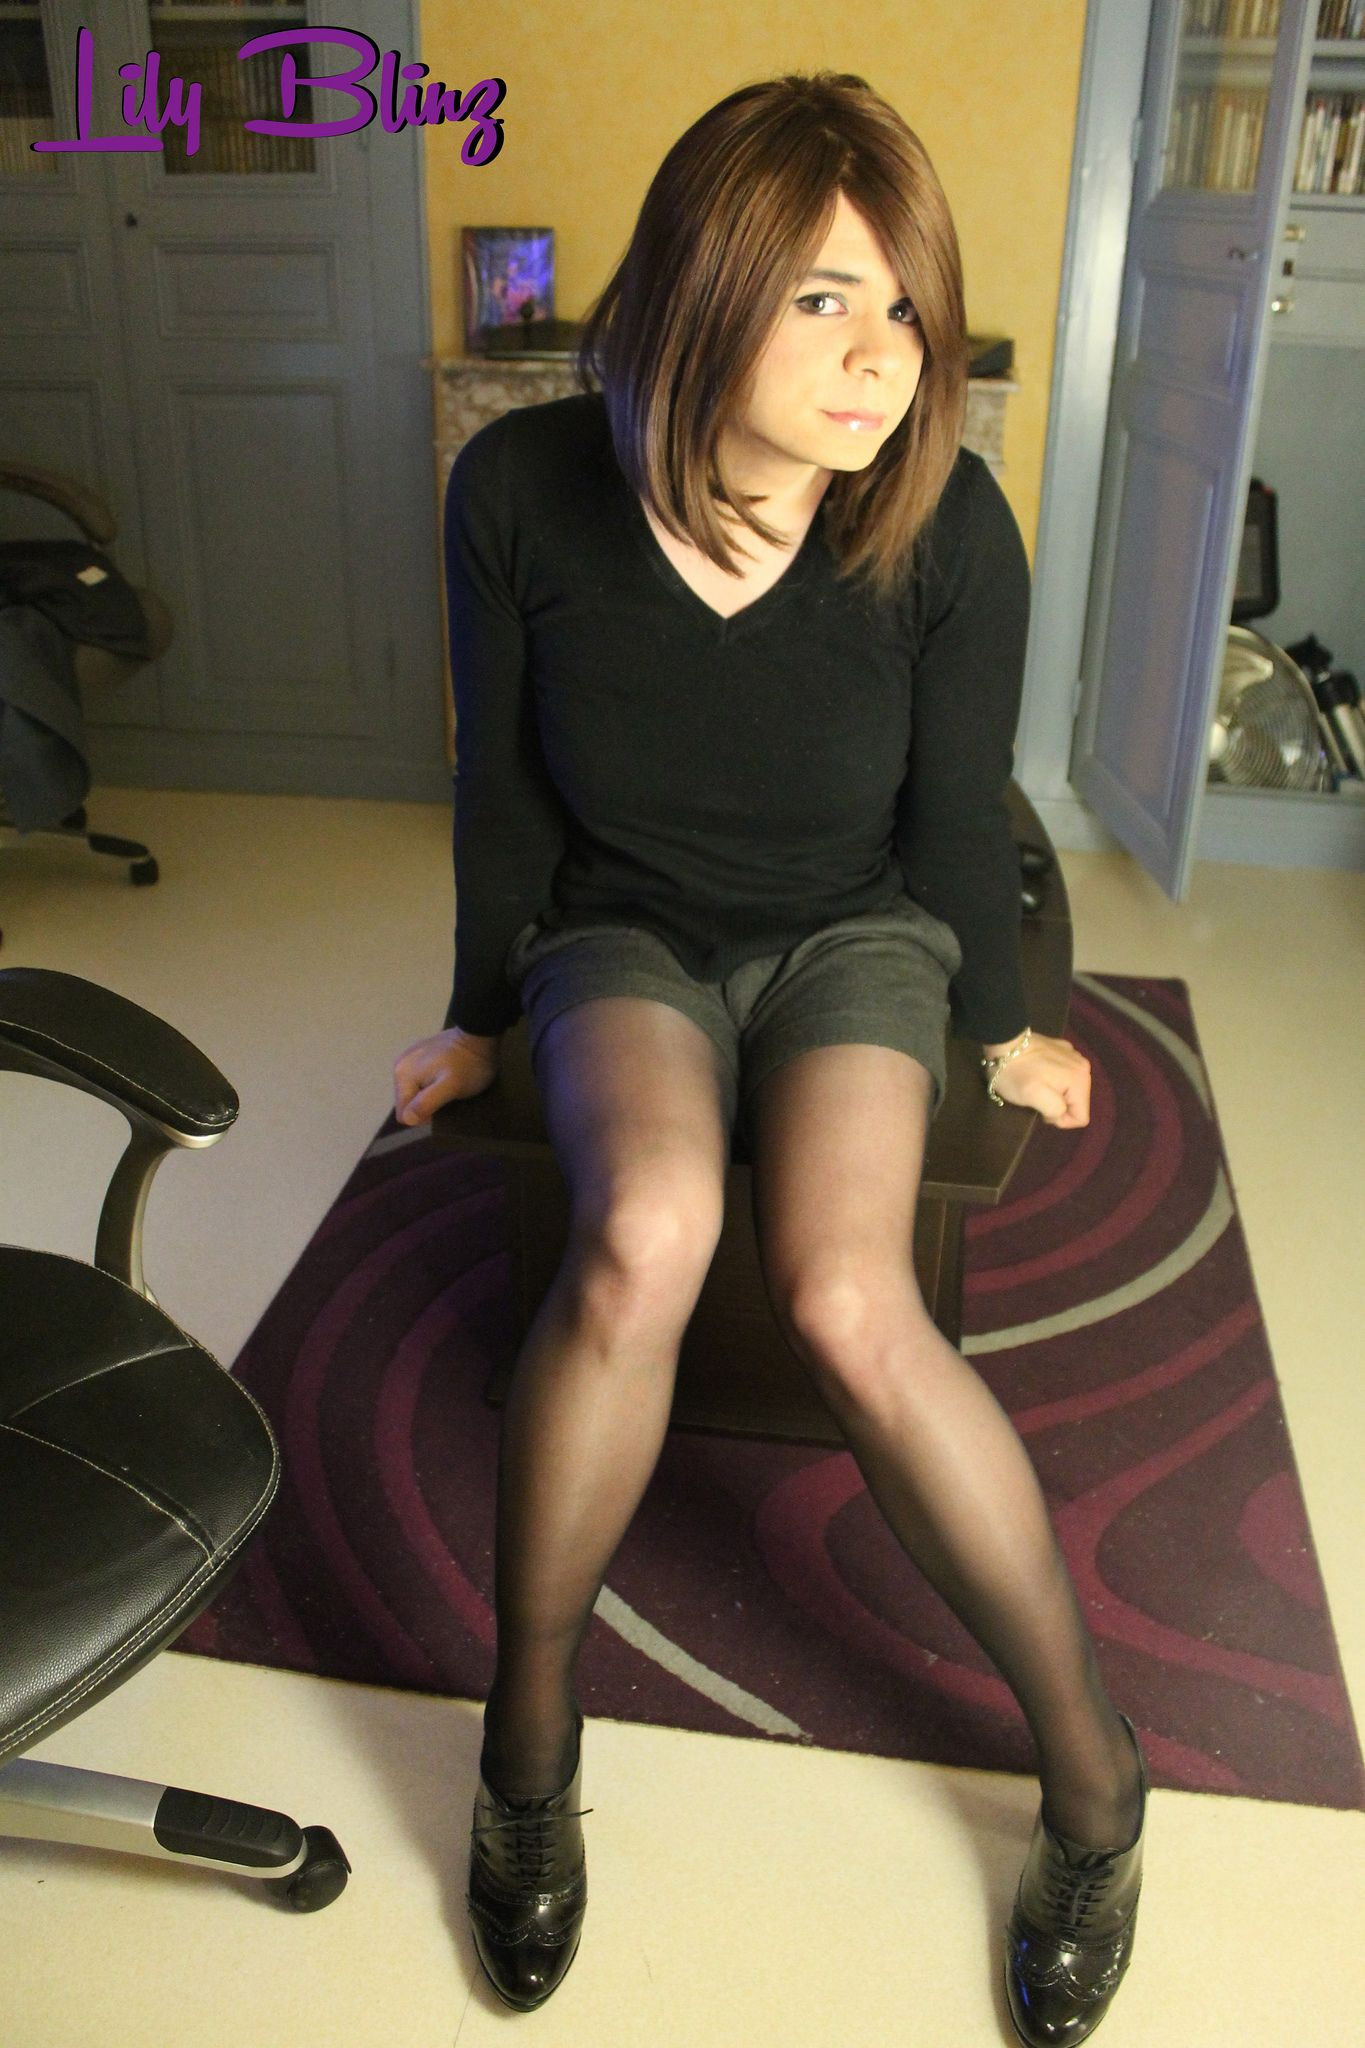 from Santino free transgender in nylons pics